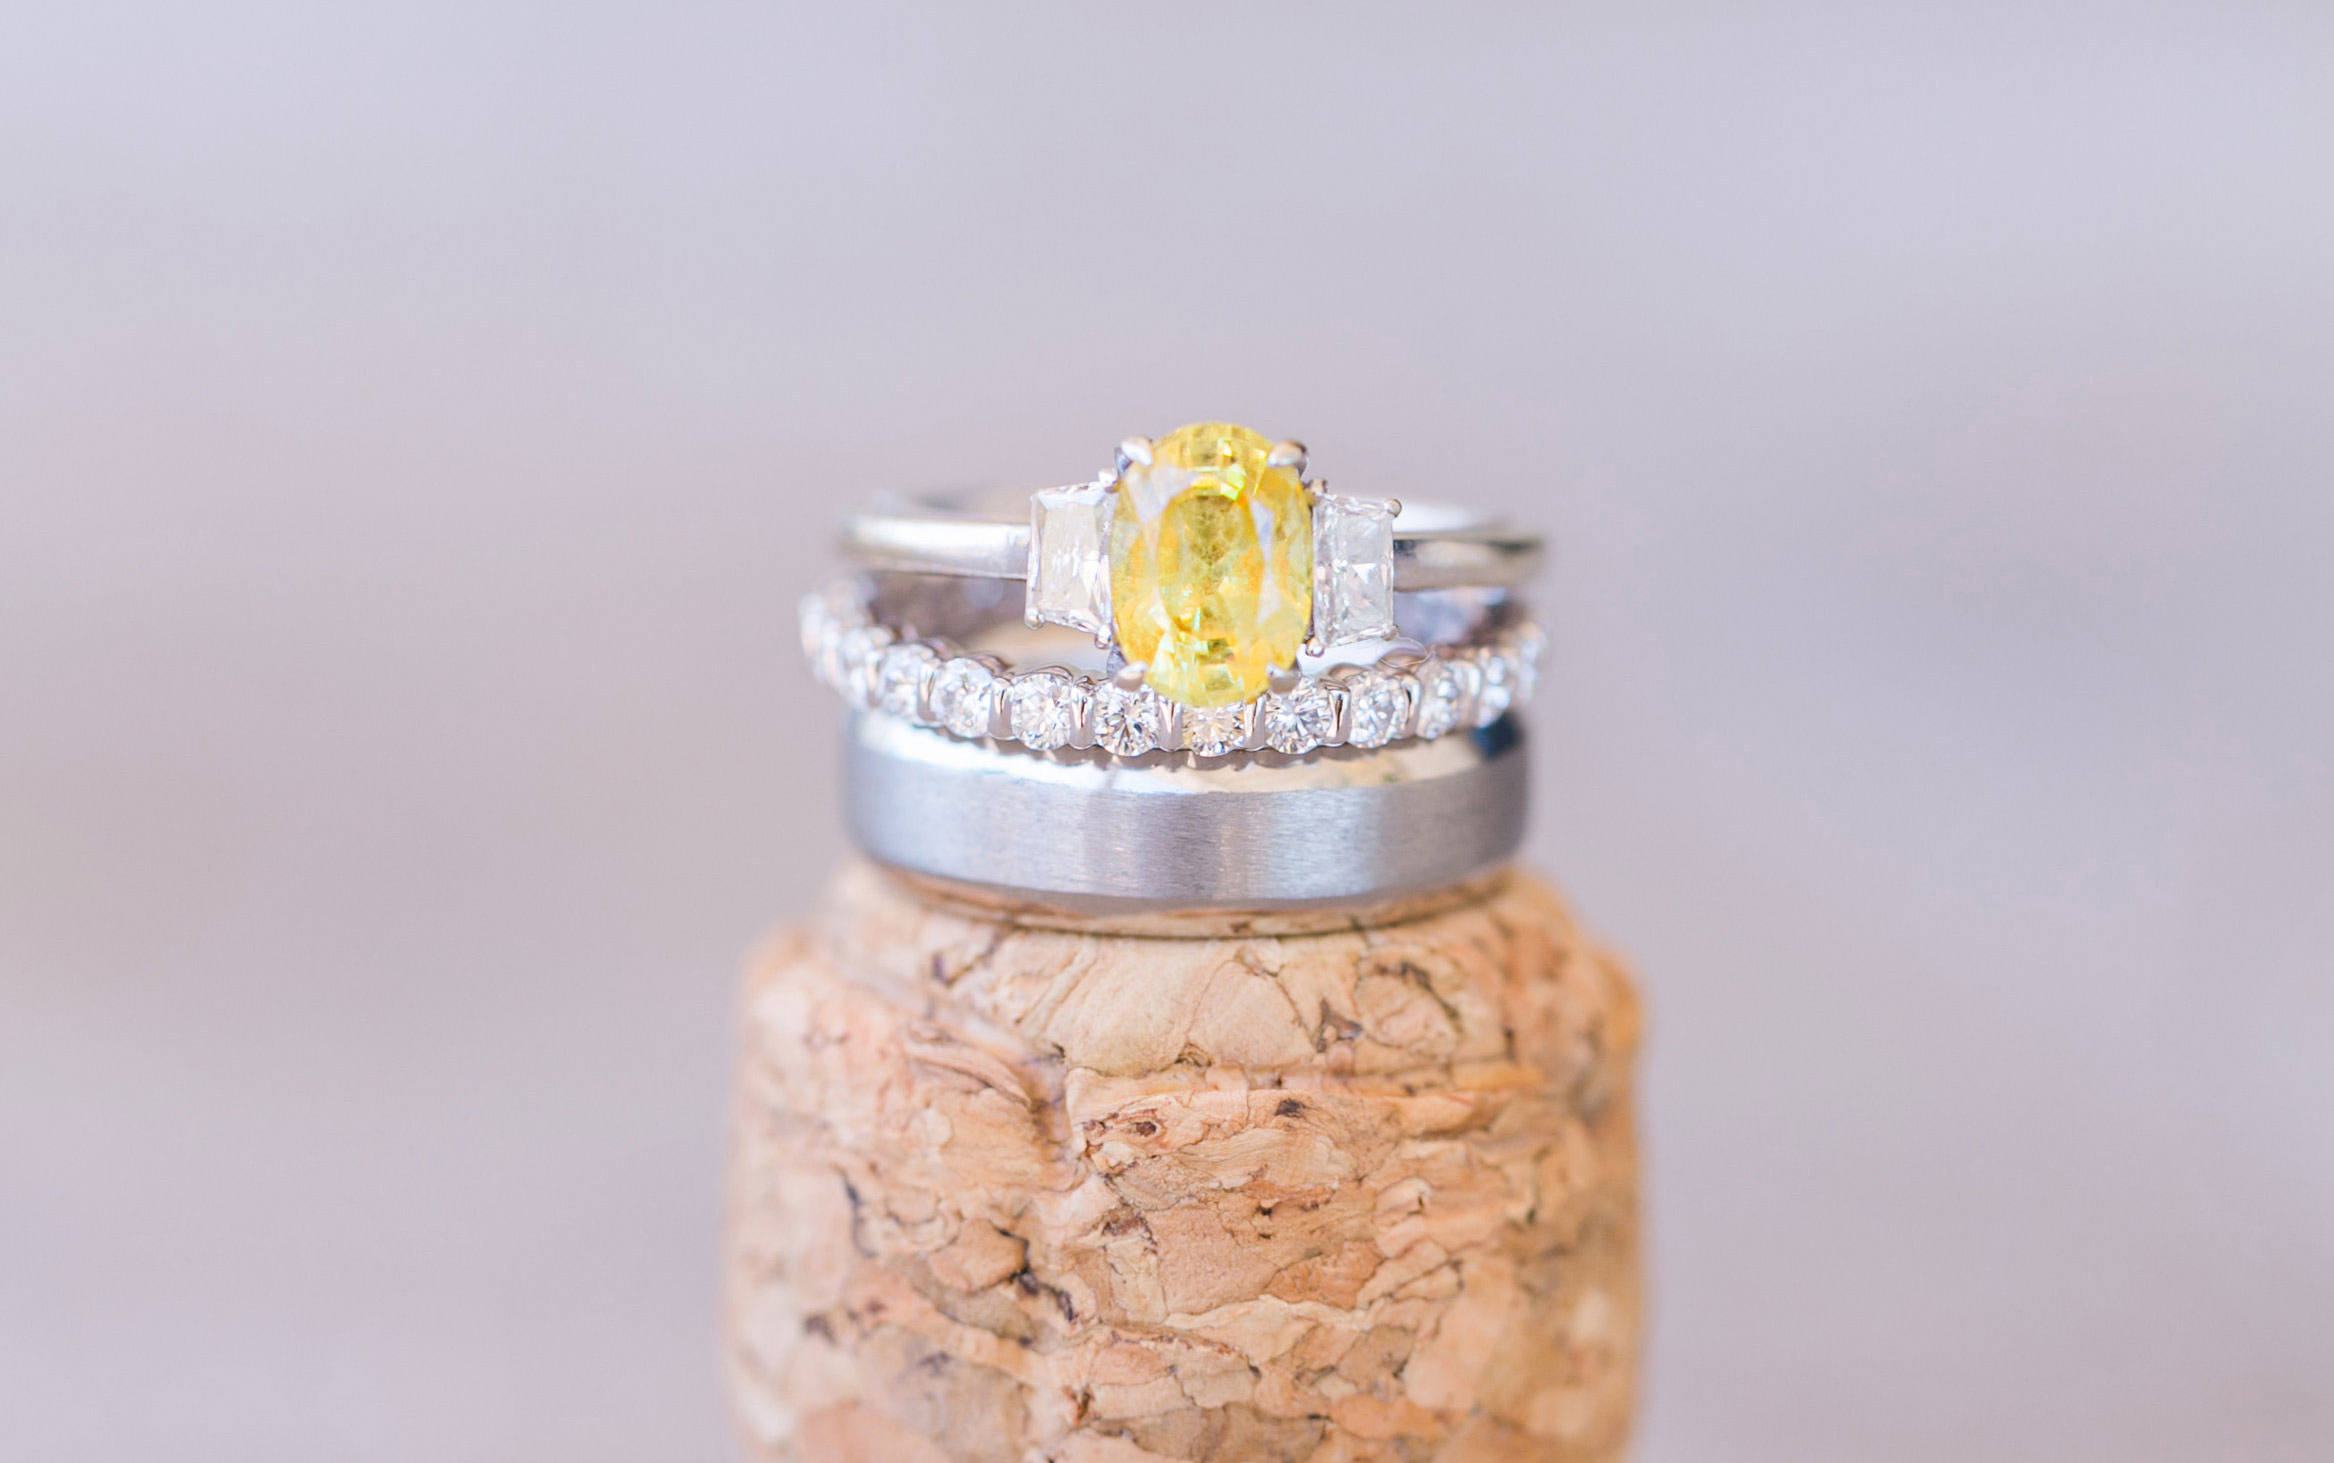 oval yellow diamond engagement ring with diamond side stones, white gold band